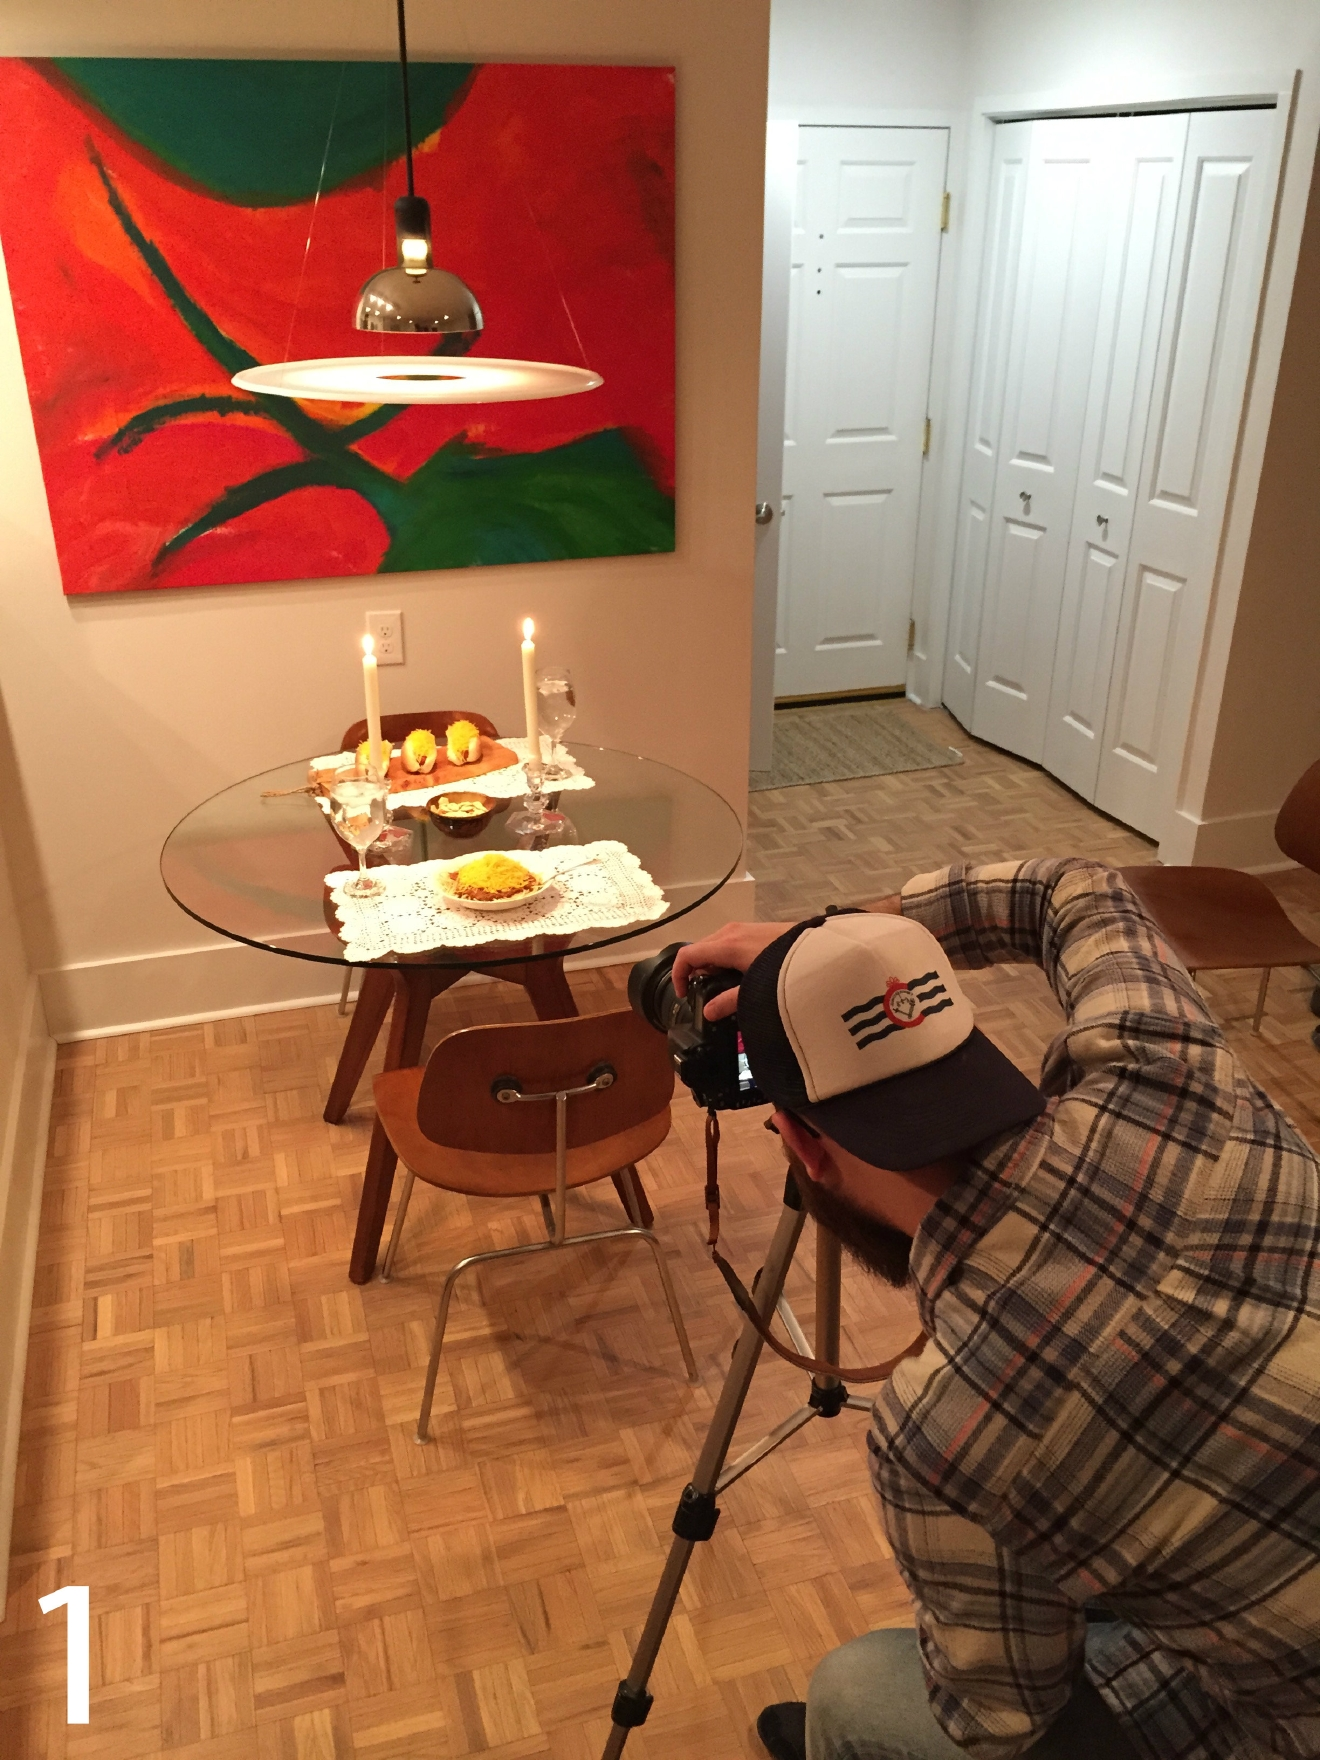 "#1 - Here's a sneak peek at our ""gourmet"" Skyline Chili photo shoot. The full story will come out on Feb. 11. Stay tuned! / Image: Leah Zipperstein"